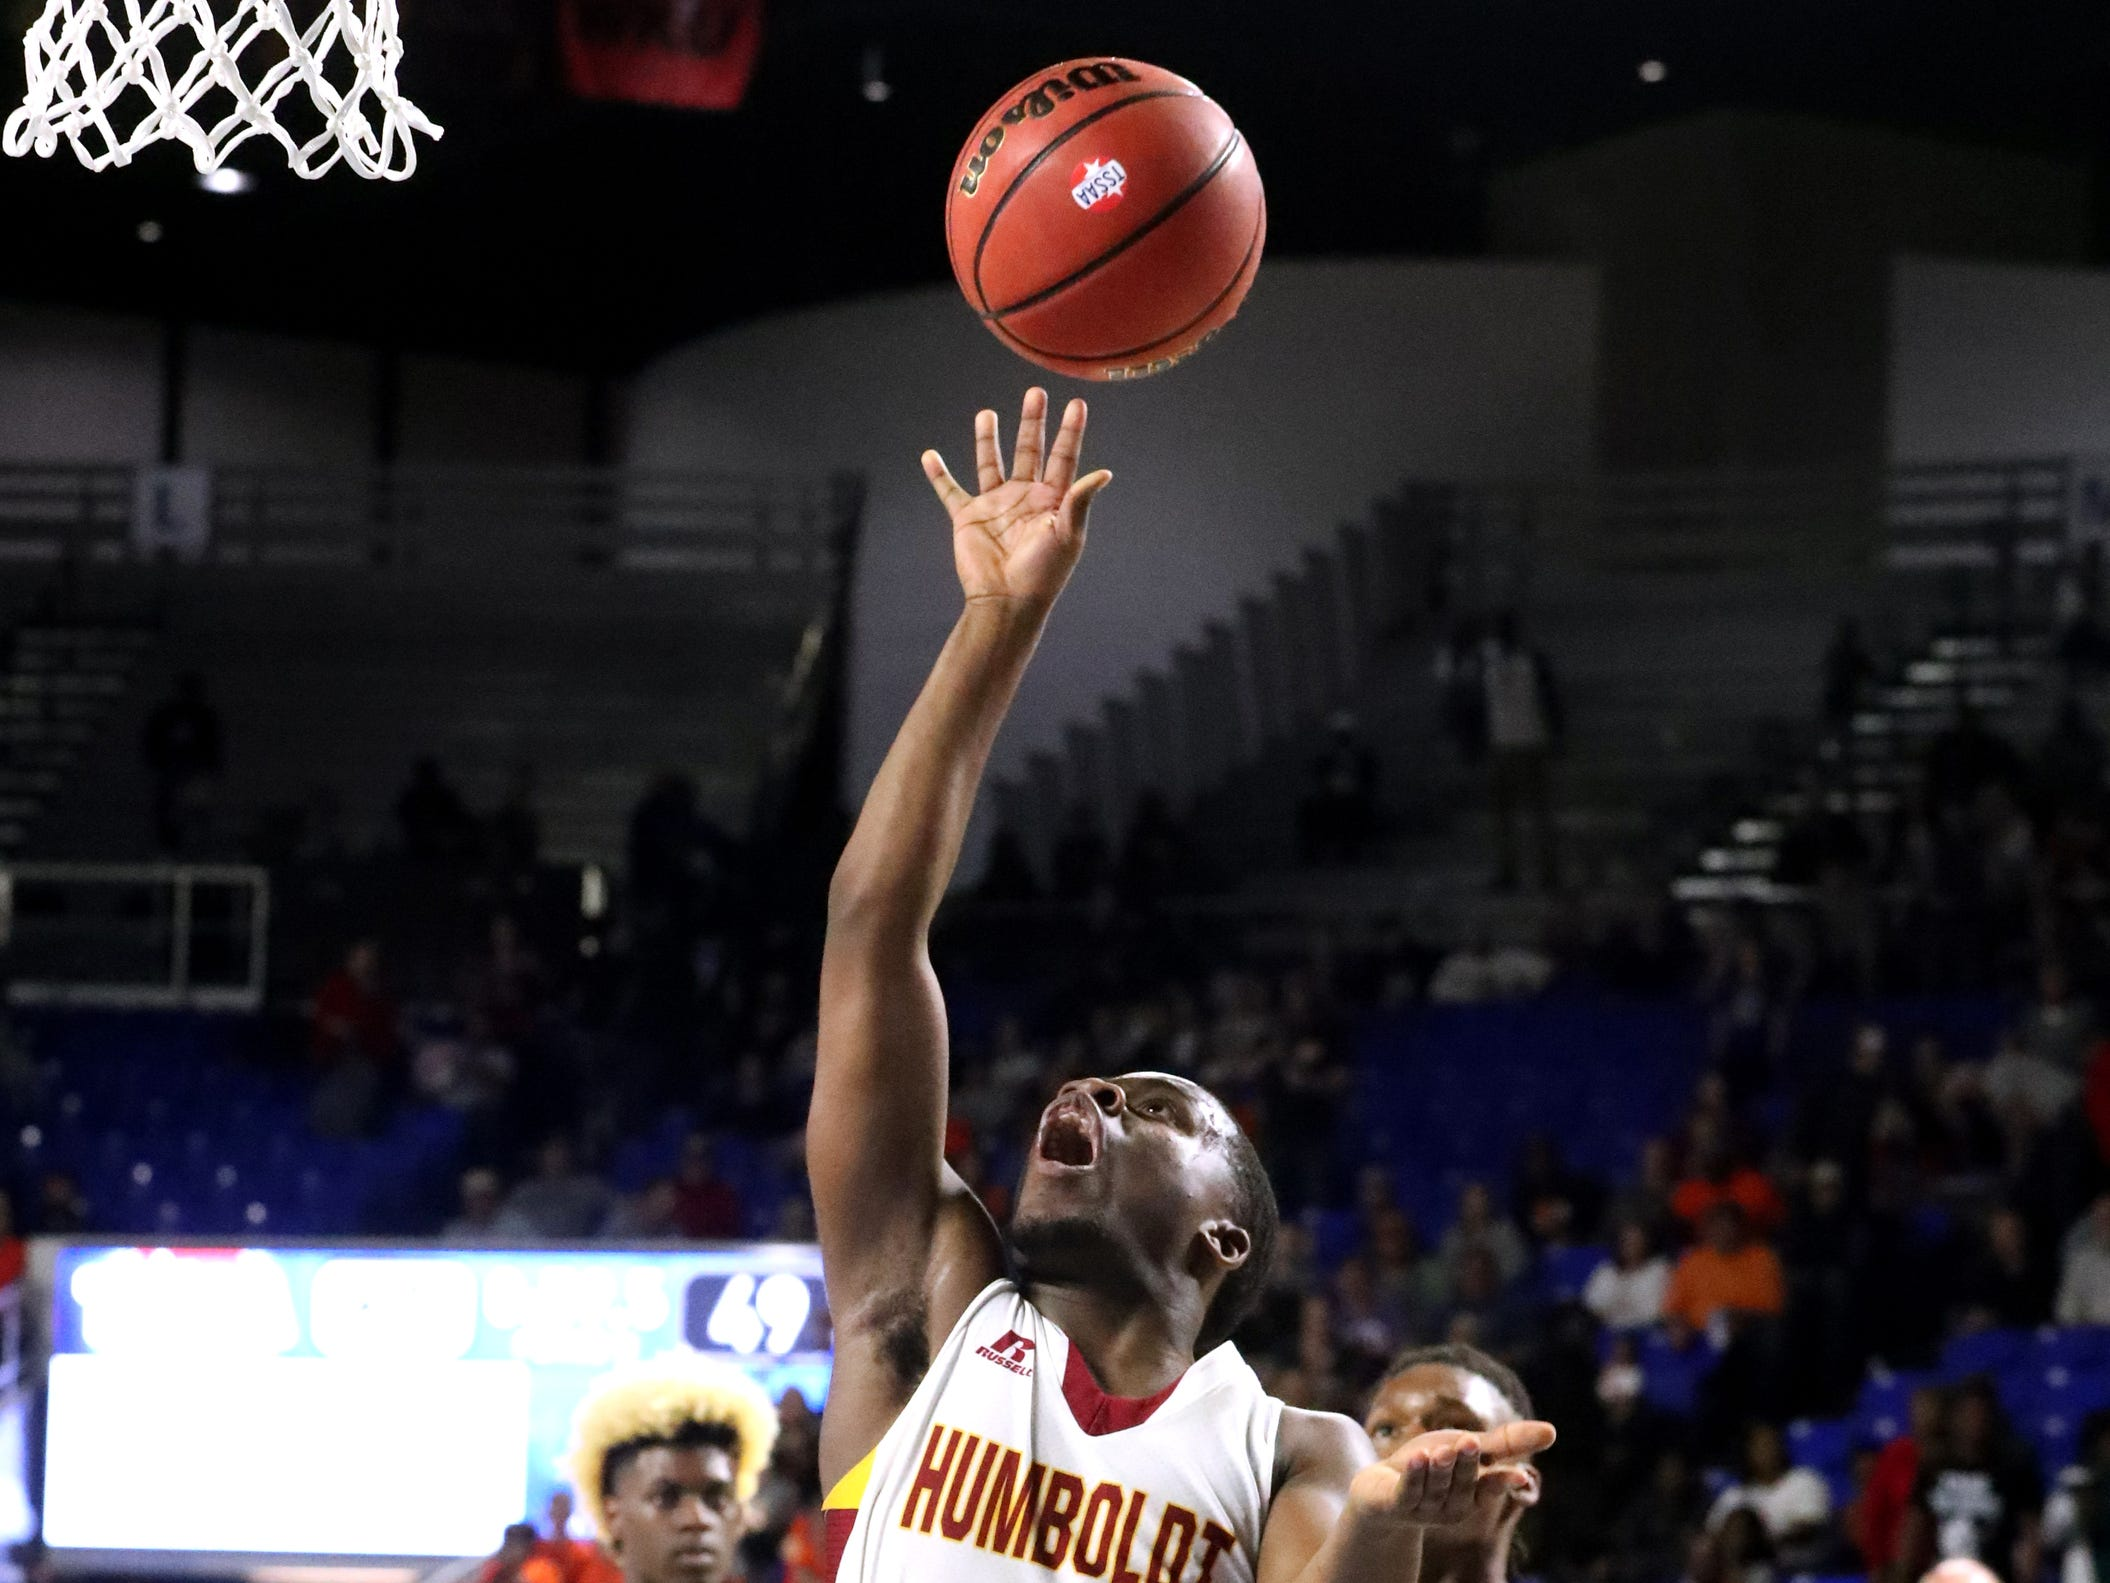 Humboldt's Montrez Ward (5) shoots the ball during the quarterfinal round of the TSSAA Class A Boys State Tournament against Fayetteville, on Thursday, March 14, 2019, at Murphy Center in Murfreesboro, Tenn.